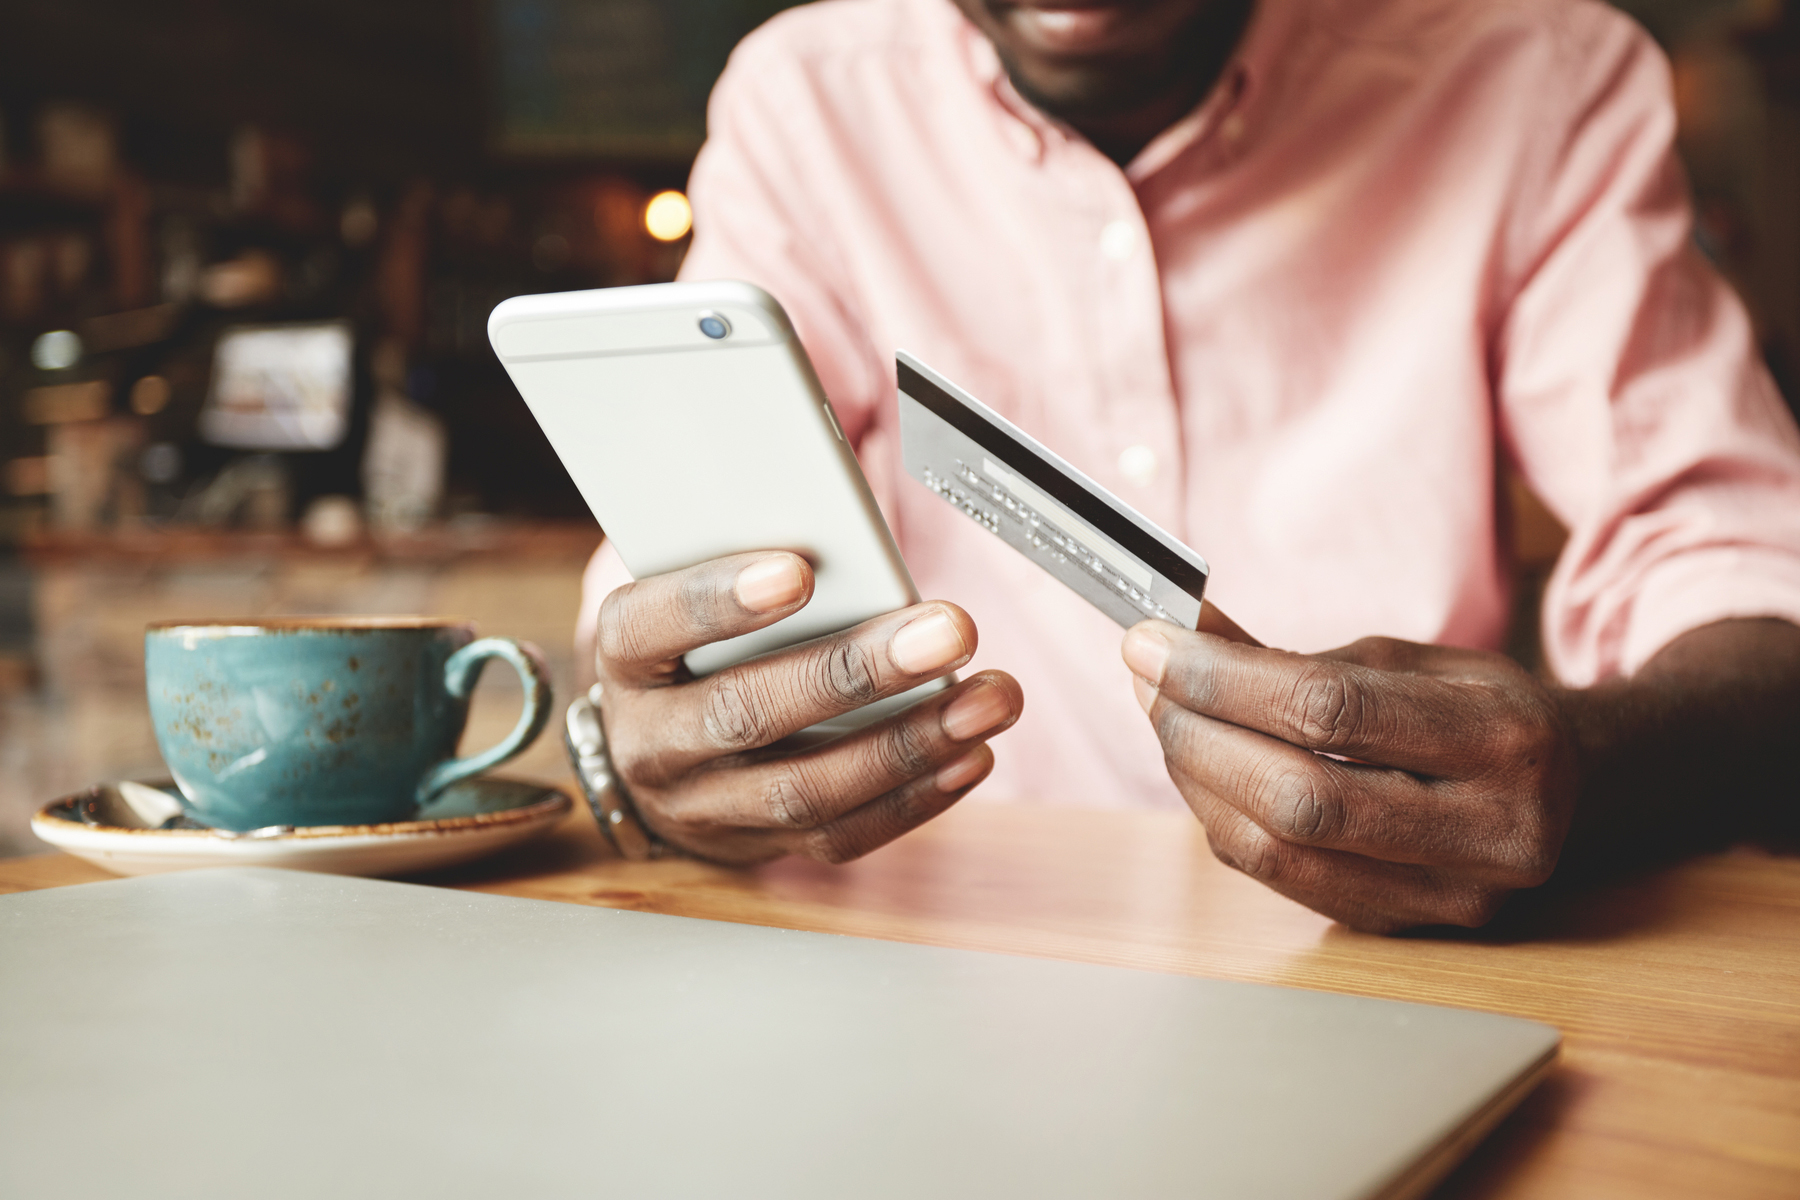 Using a credit card and mobile banking